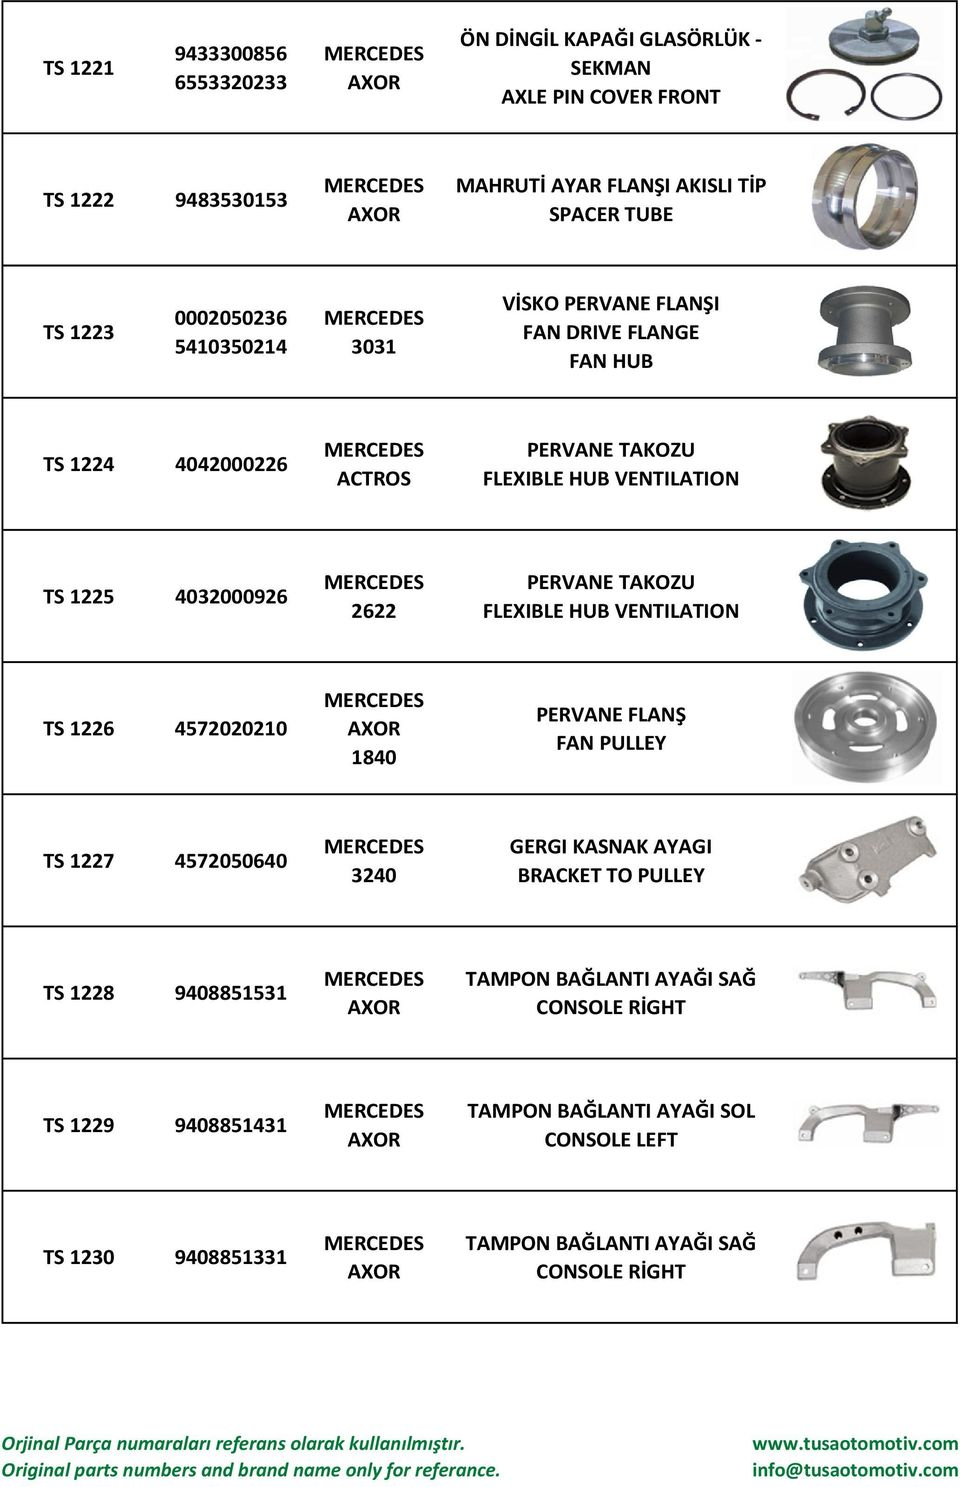 2622 PERVANE TAKOZU FLEXIBLE HUB VENTILATION TS 1226 4572020210 1840 PERVANE FLANŞ FAN PULLEY TS 1227 4572050640 3240 GERGI KASNAK AYAGI BRACKET TO PULLEY TS